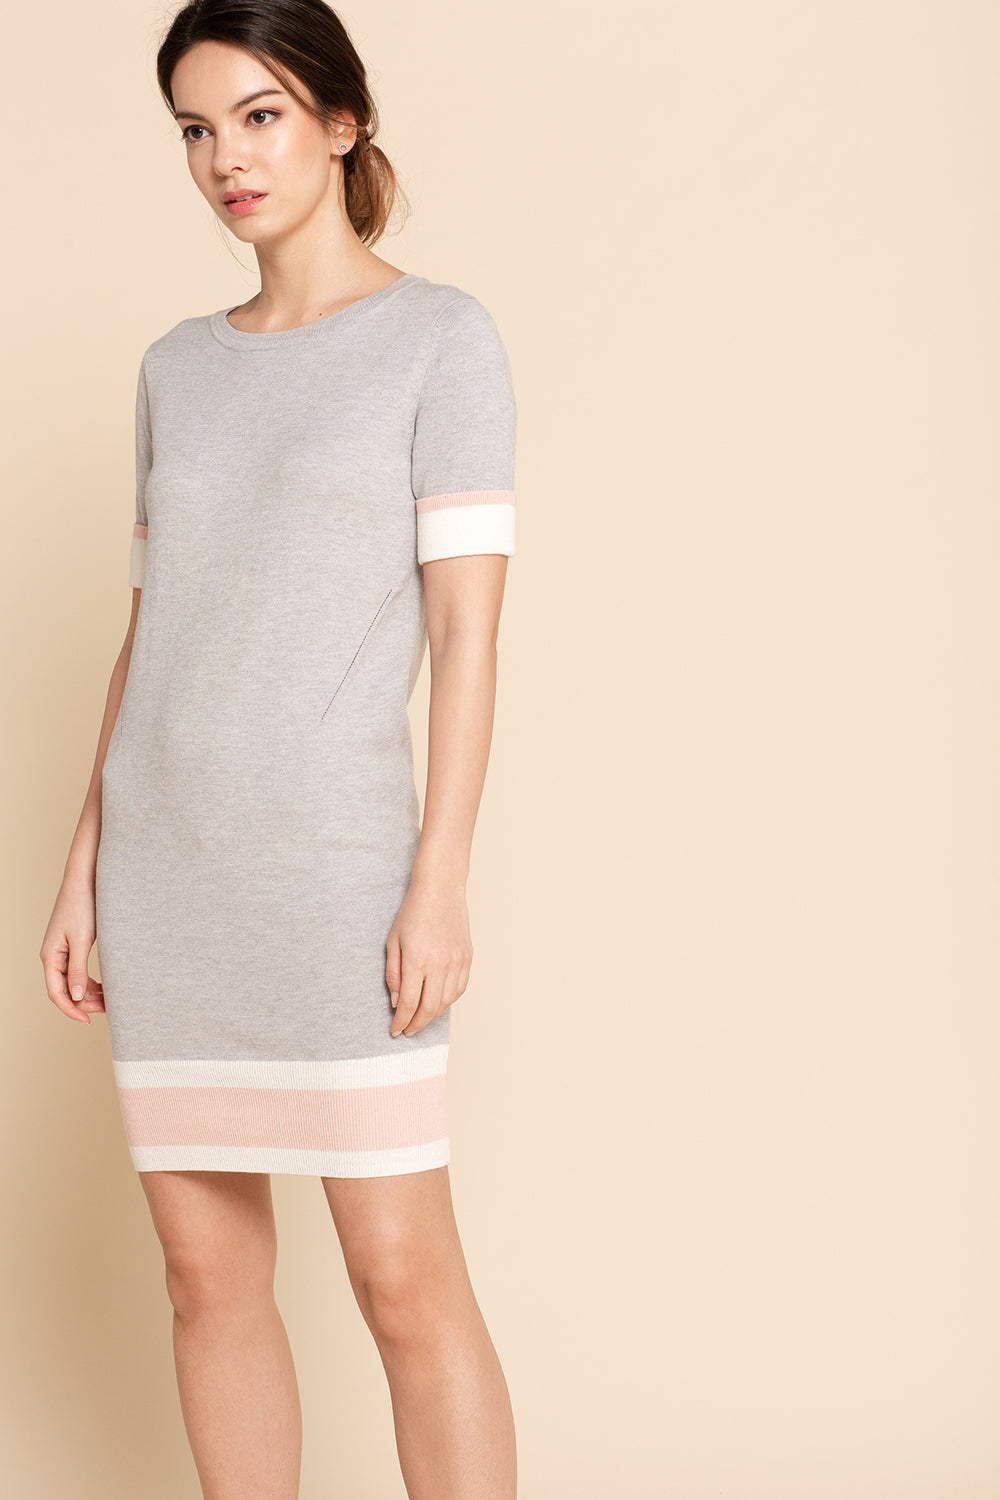 Colorblock Shift Dress - Stripe